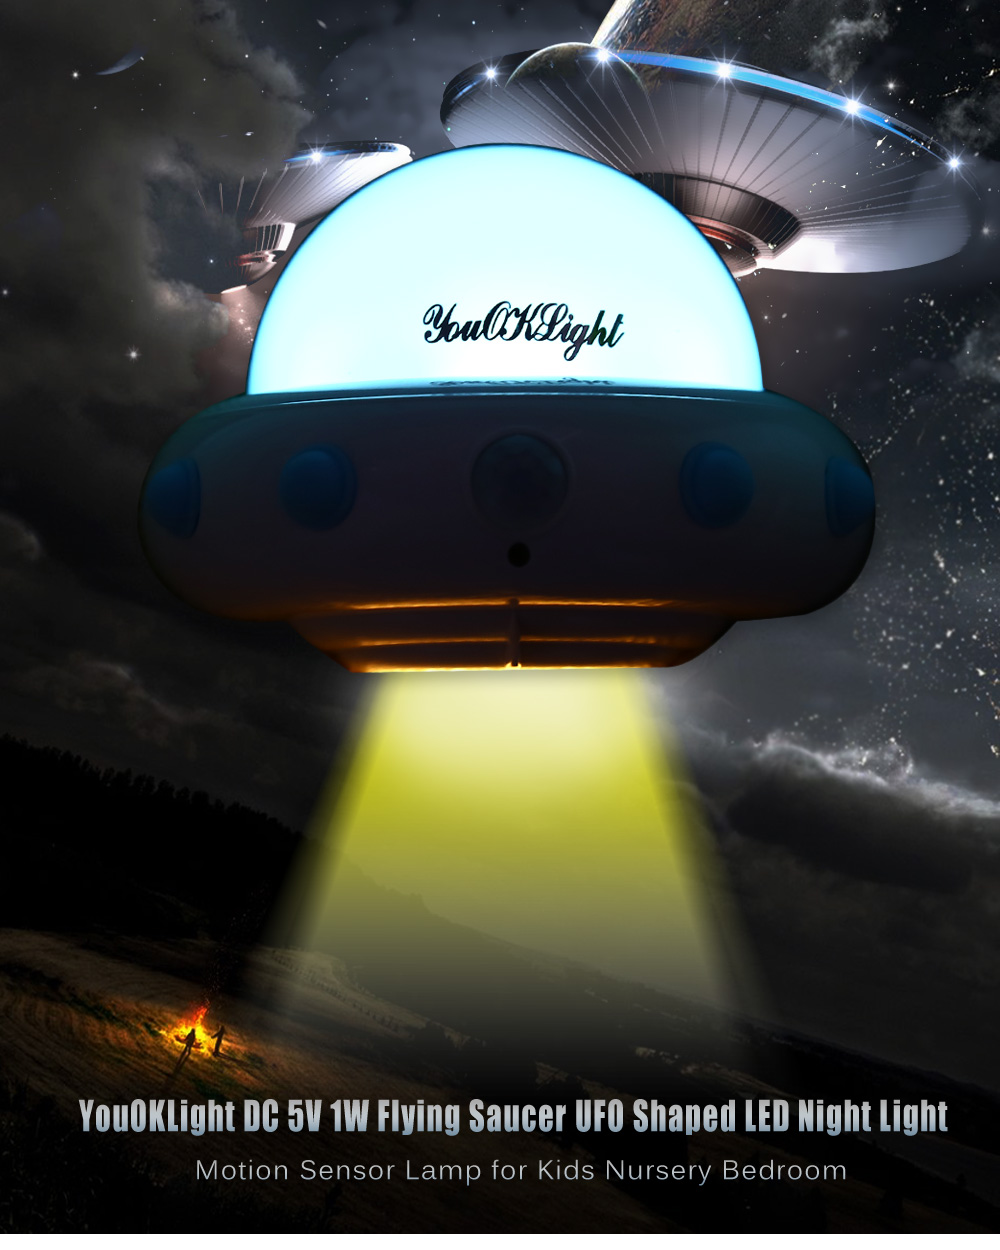 Night lights nursery - Unique Ufo Shaped Led Night Light Motion Sensor Lamp Rechargeable Stick On Anywhere Nightlights For